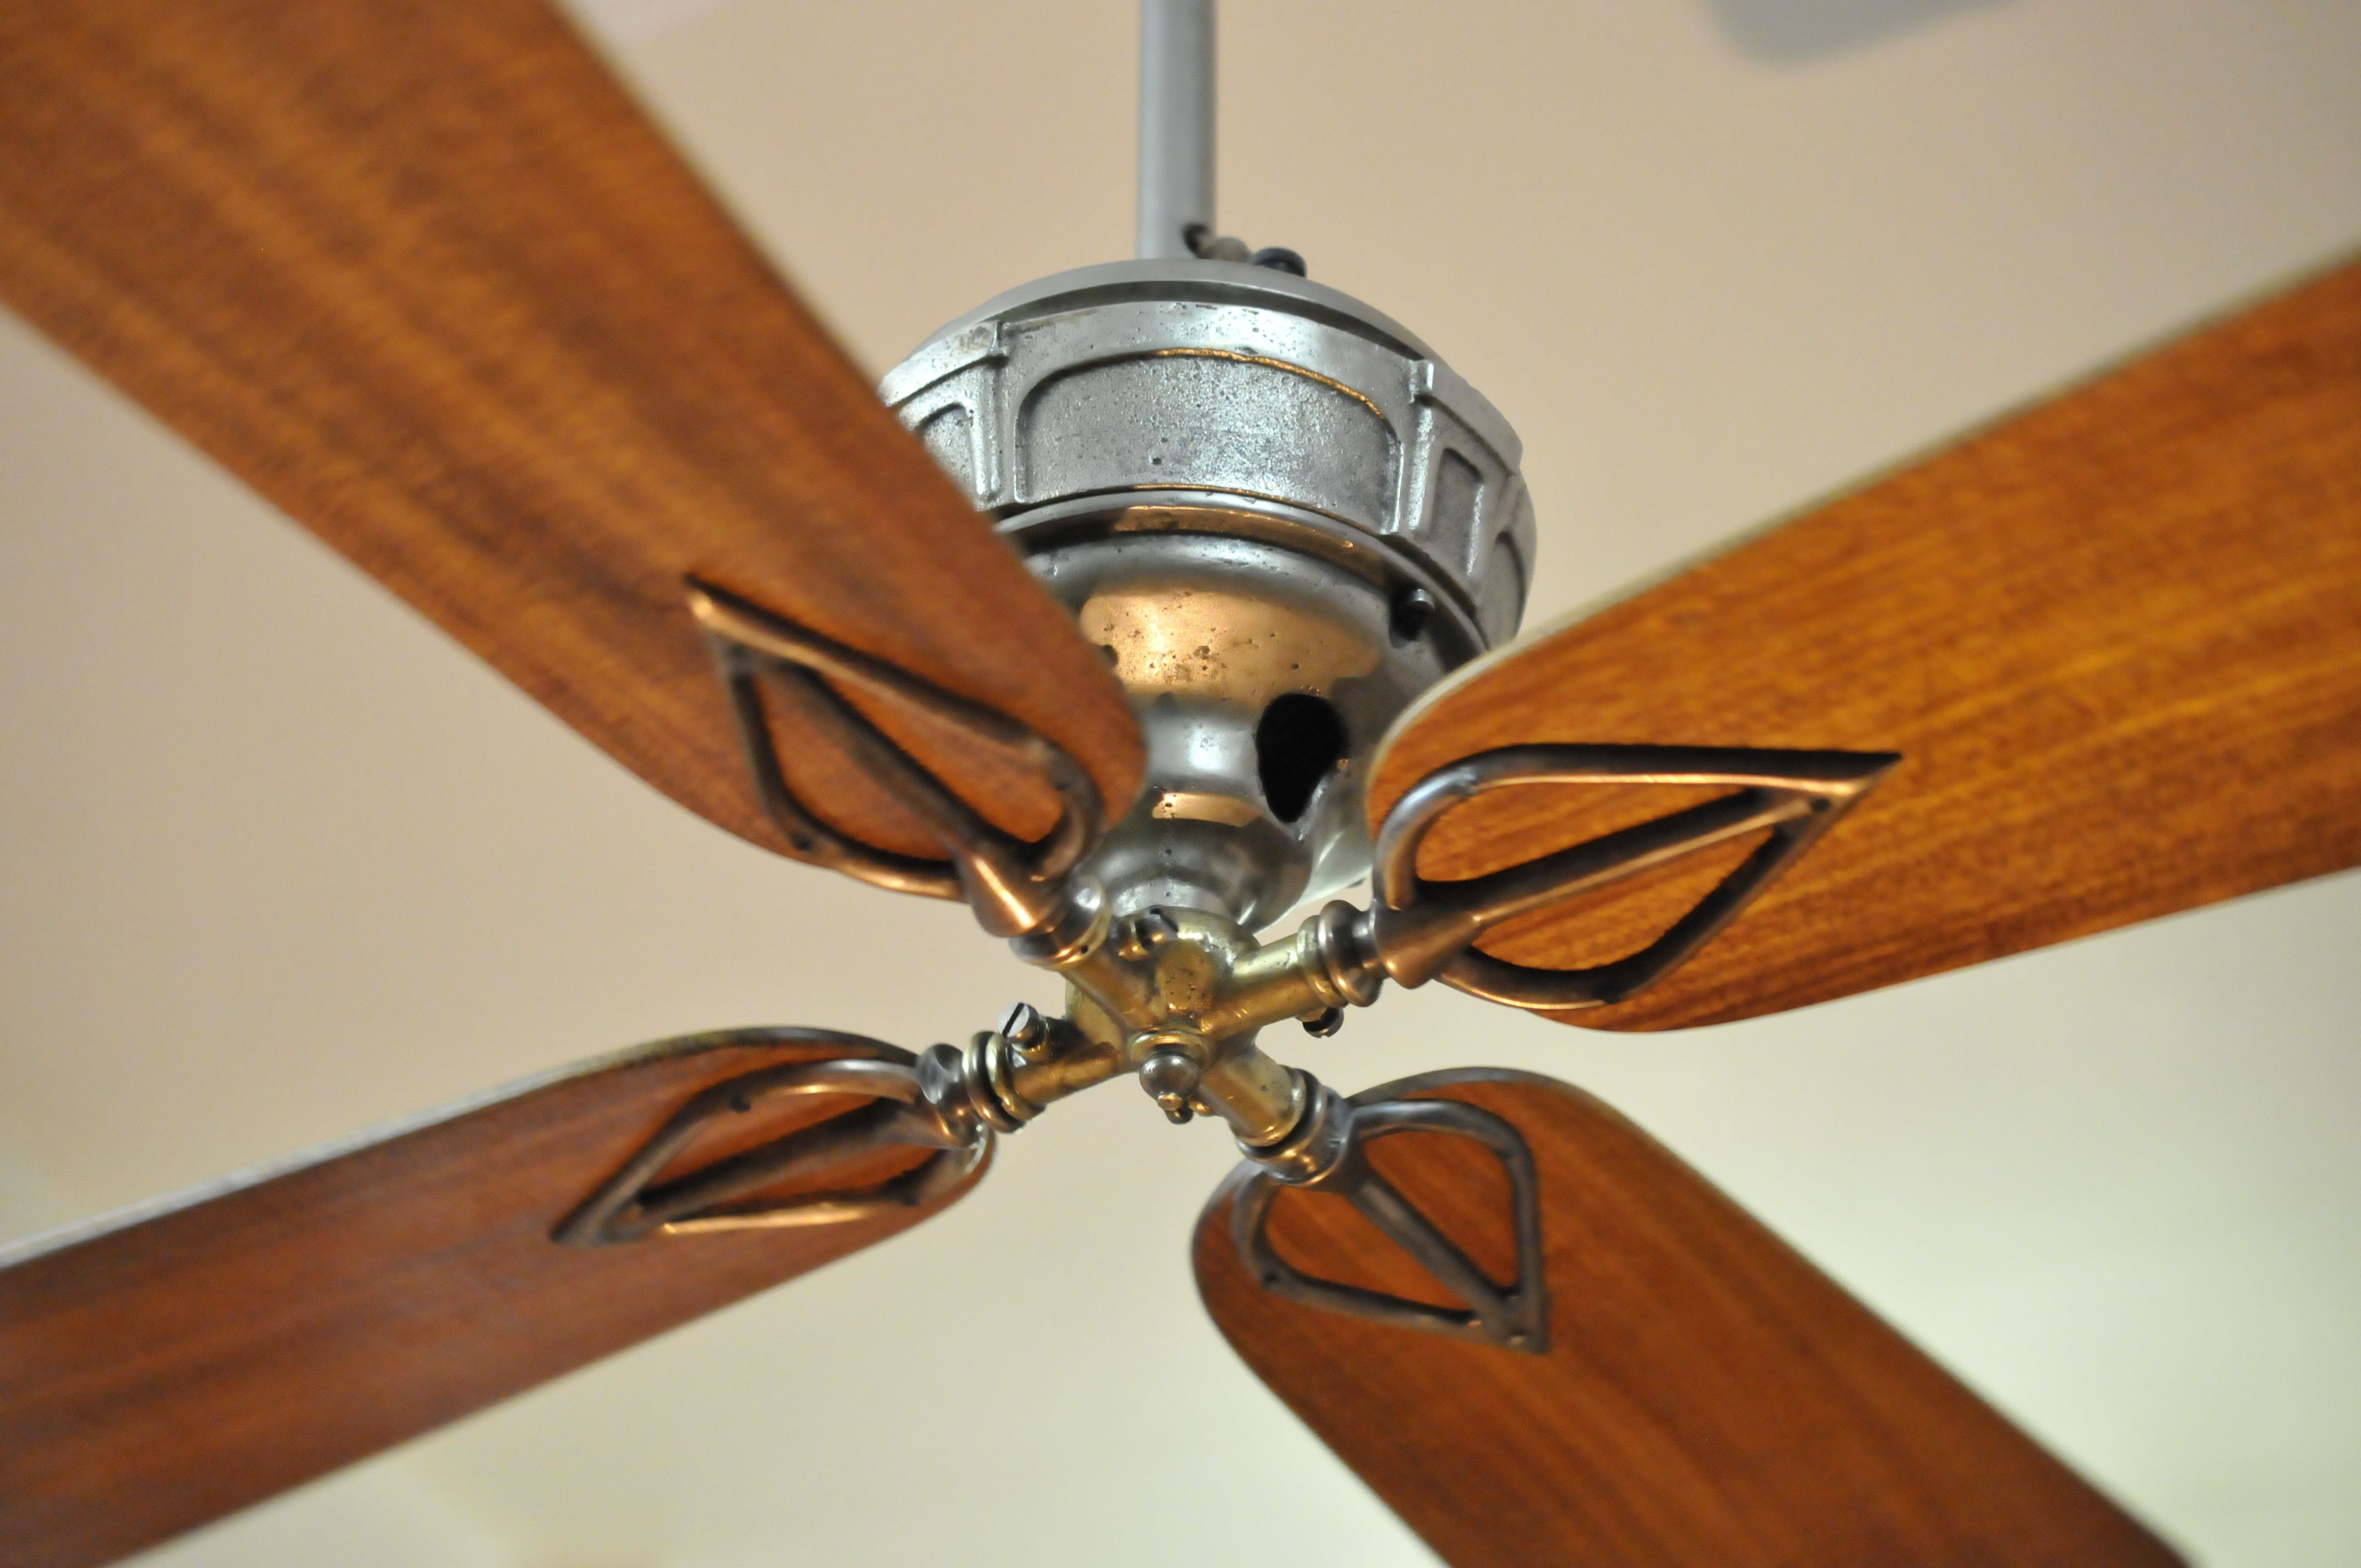 smsender cheap co tulum nickel corner ceiling at pictures fans kmart ceilings breeze fan cool x gallery brushed